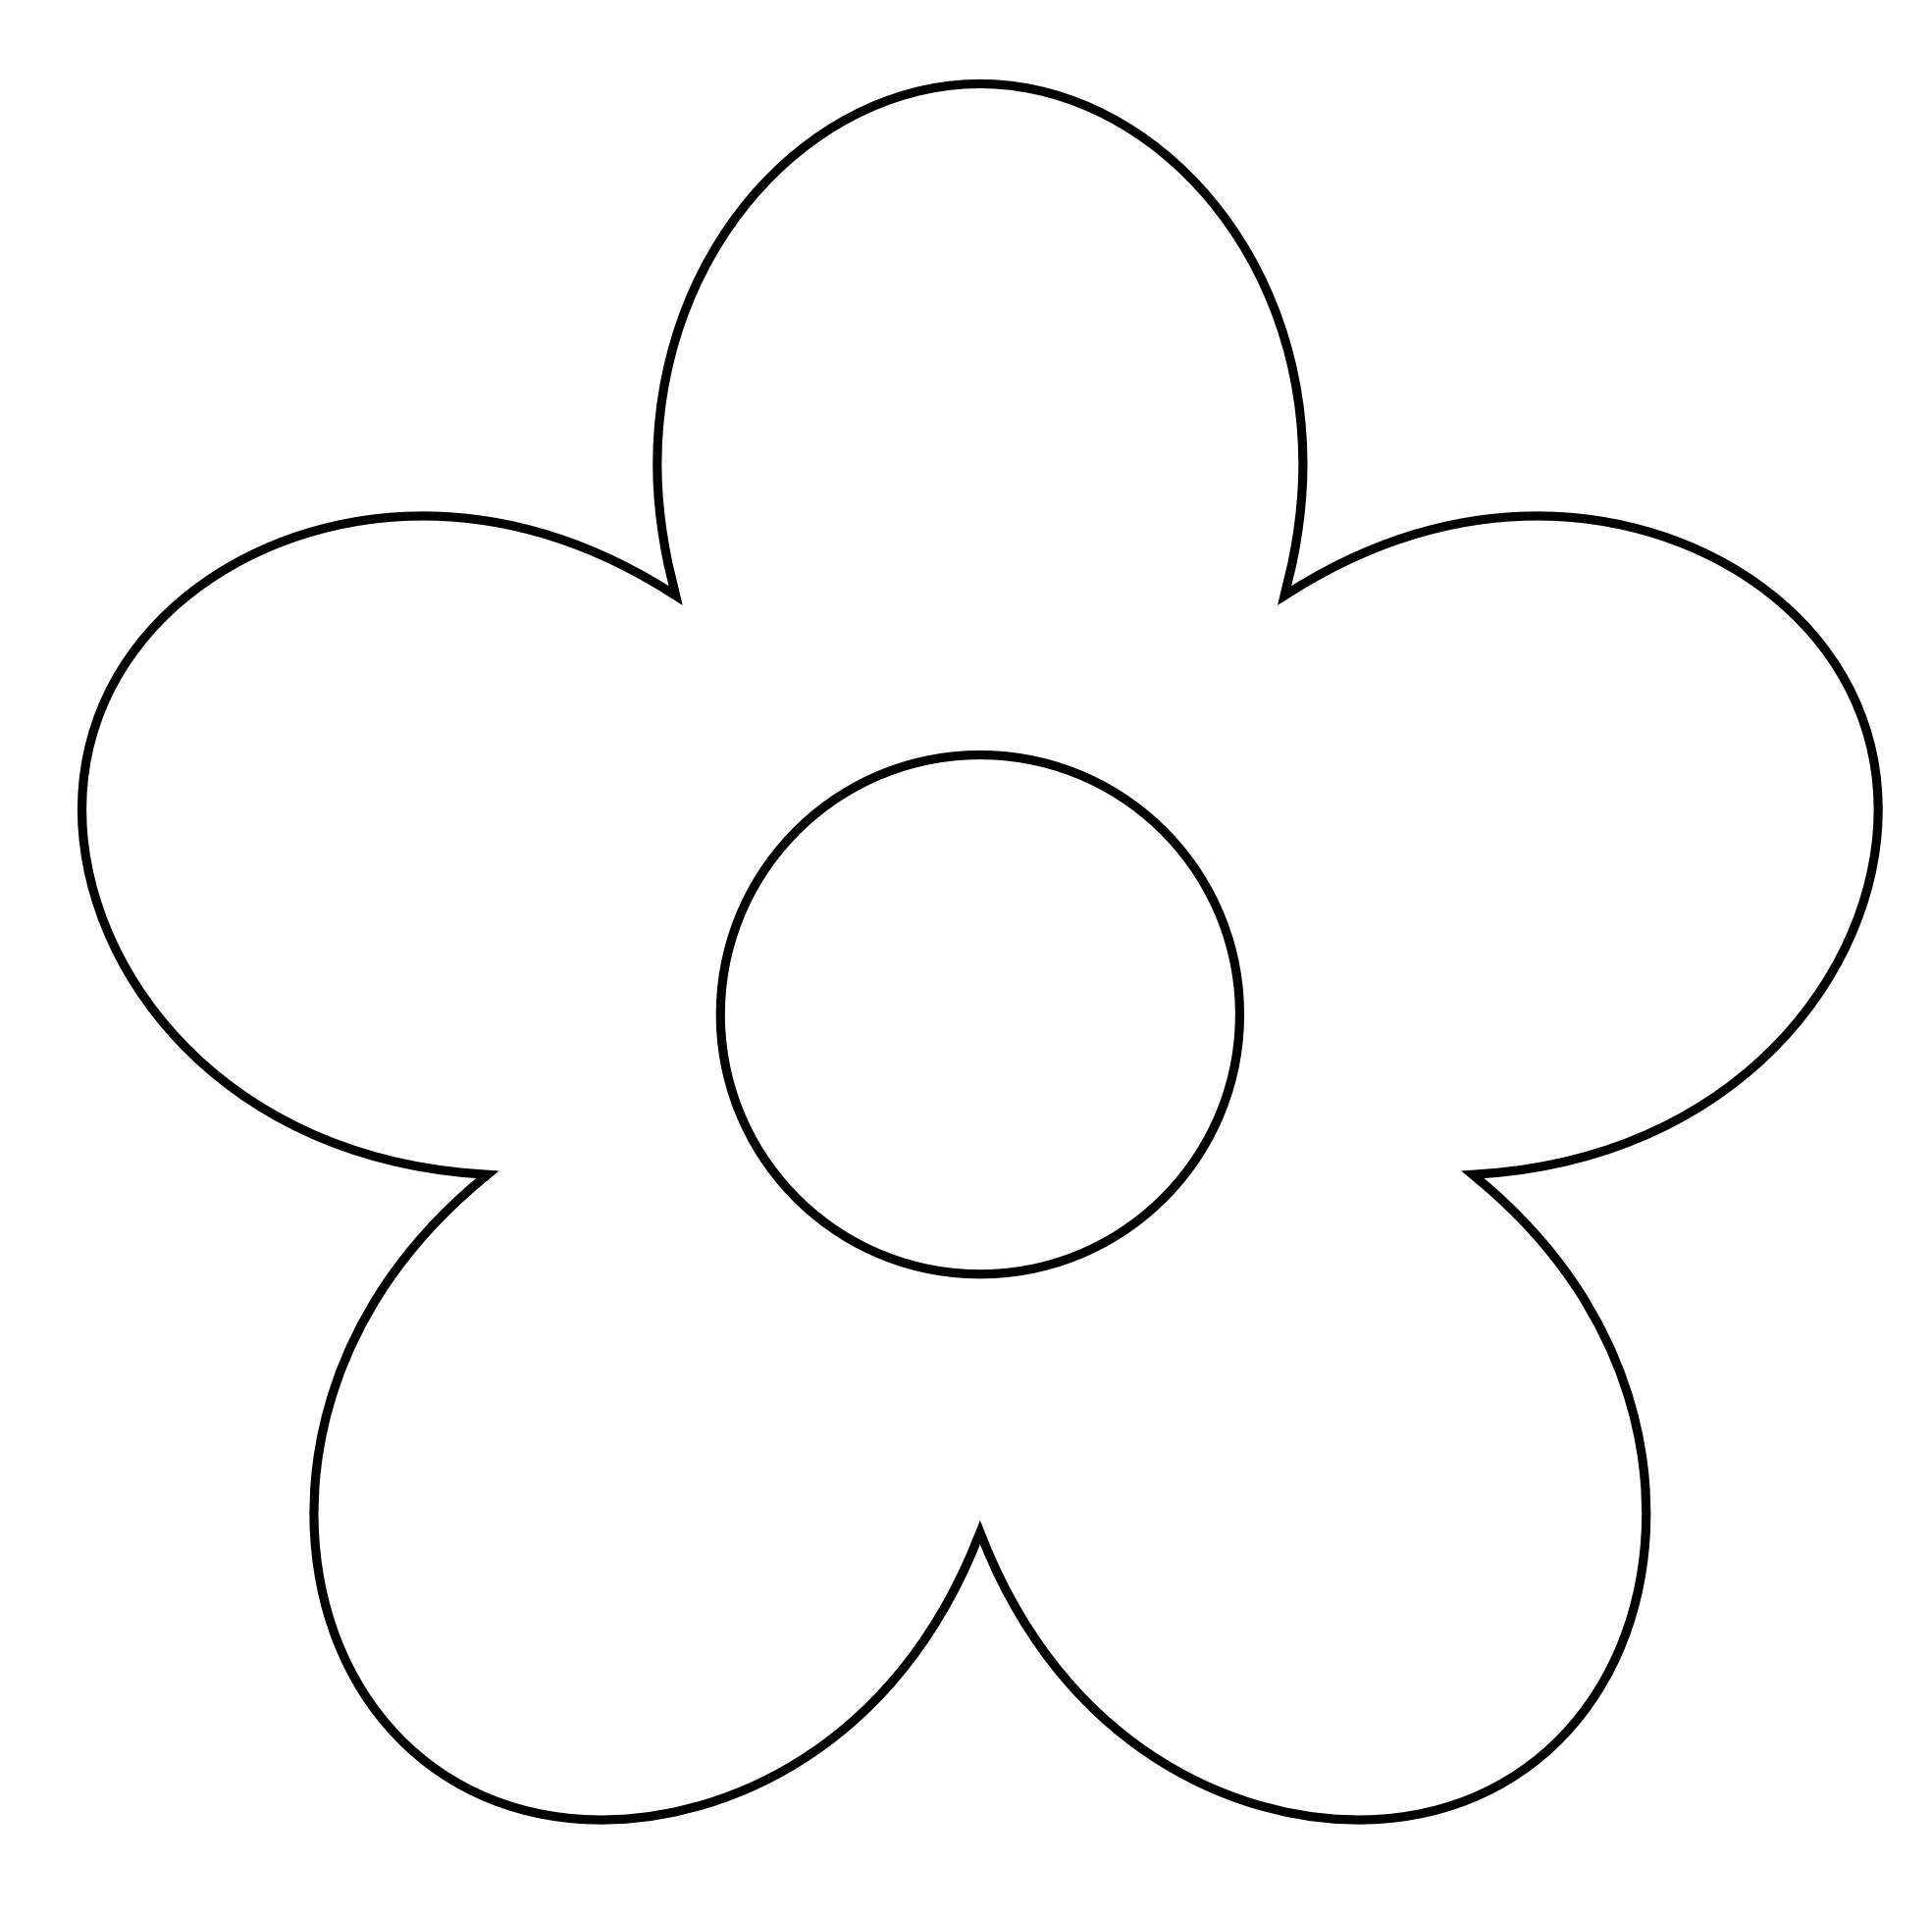 12 Graphic Black And White Spring Flower Images